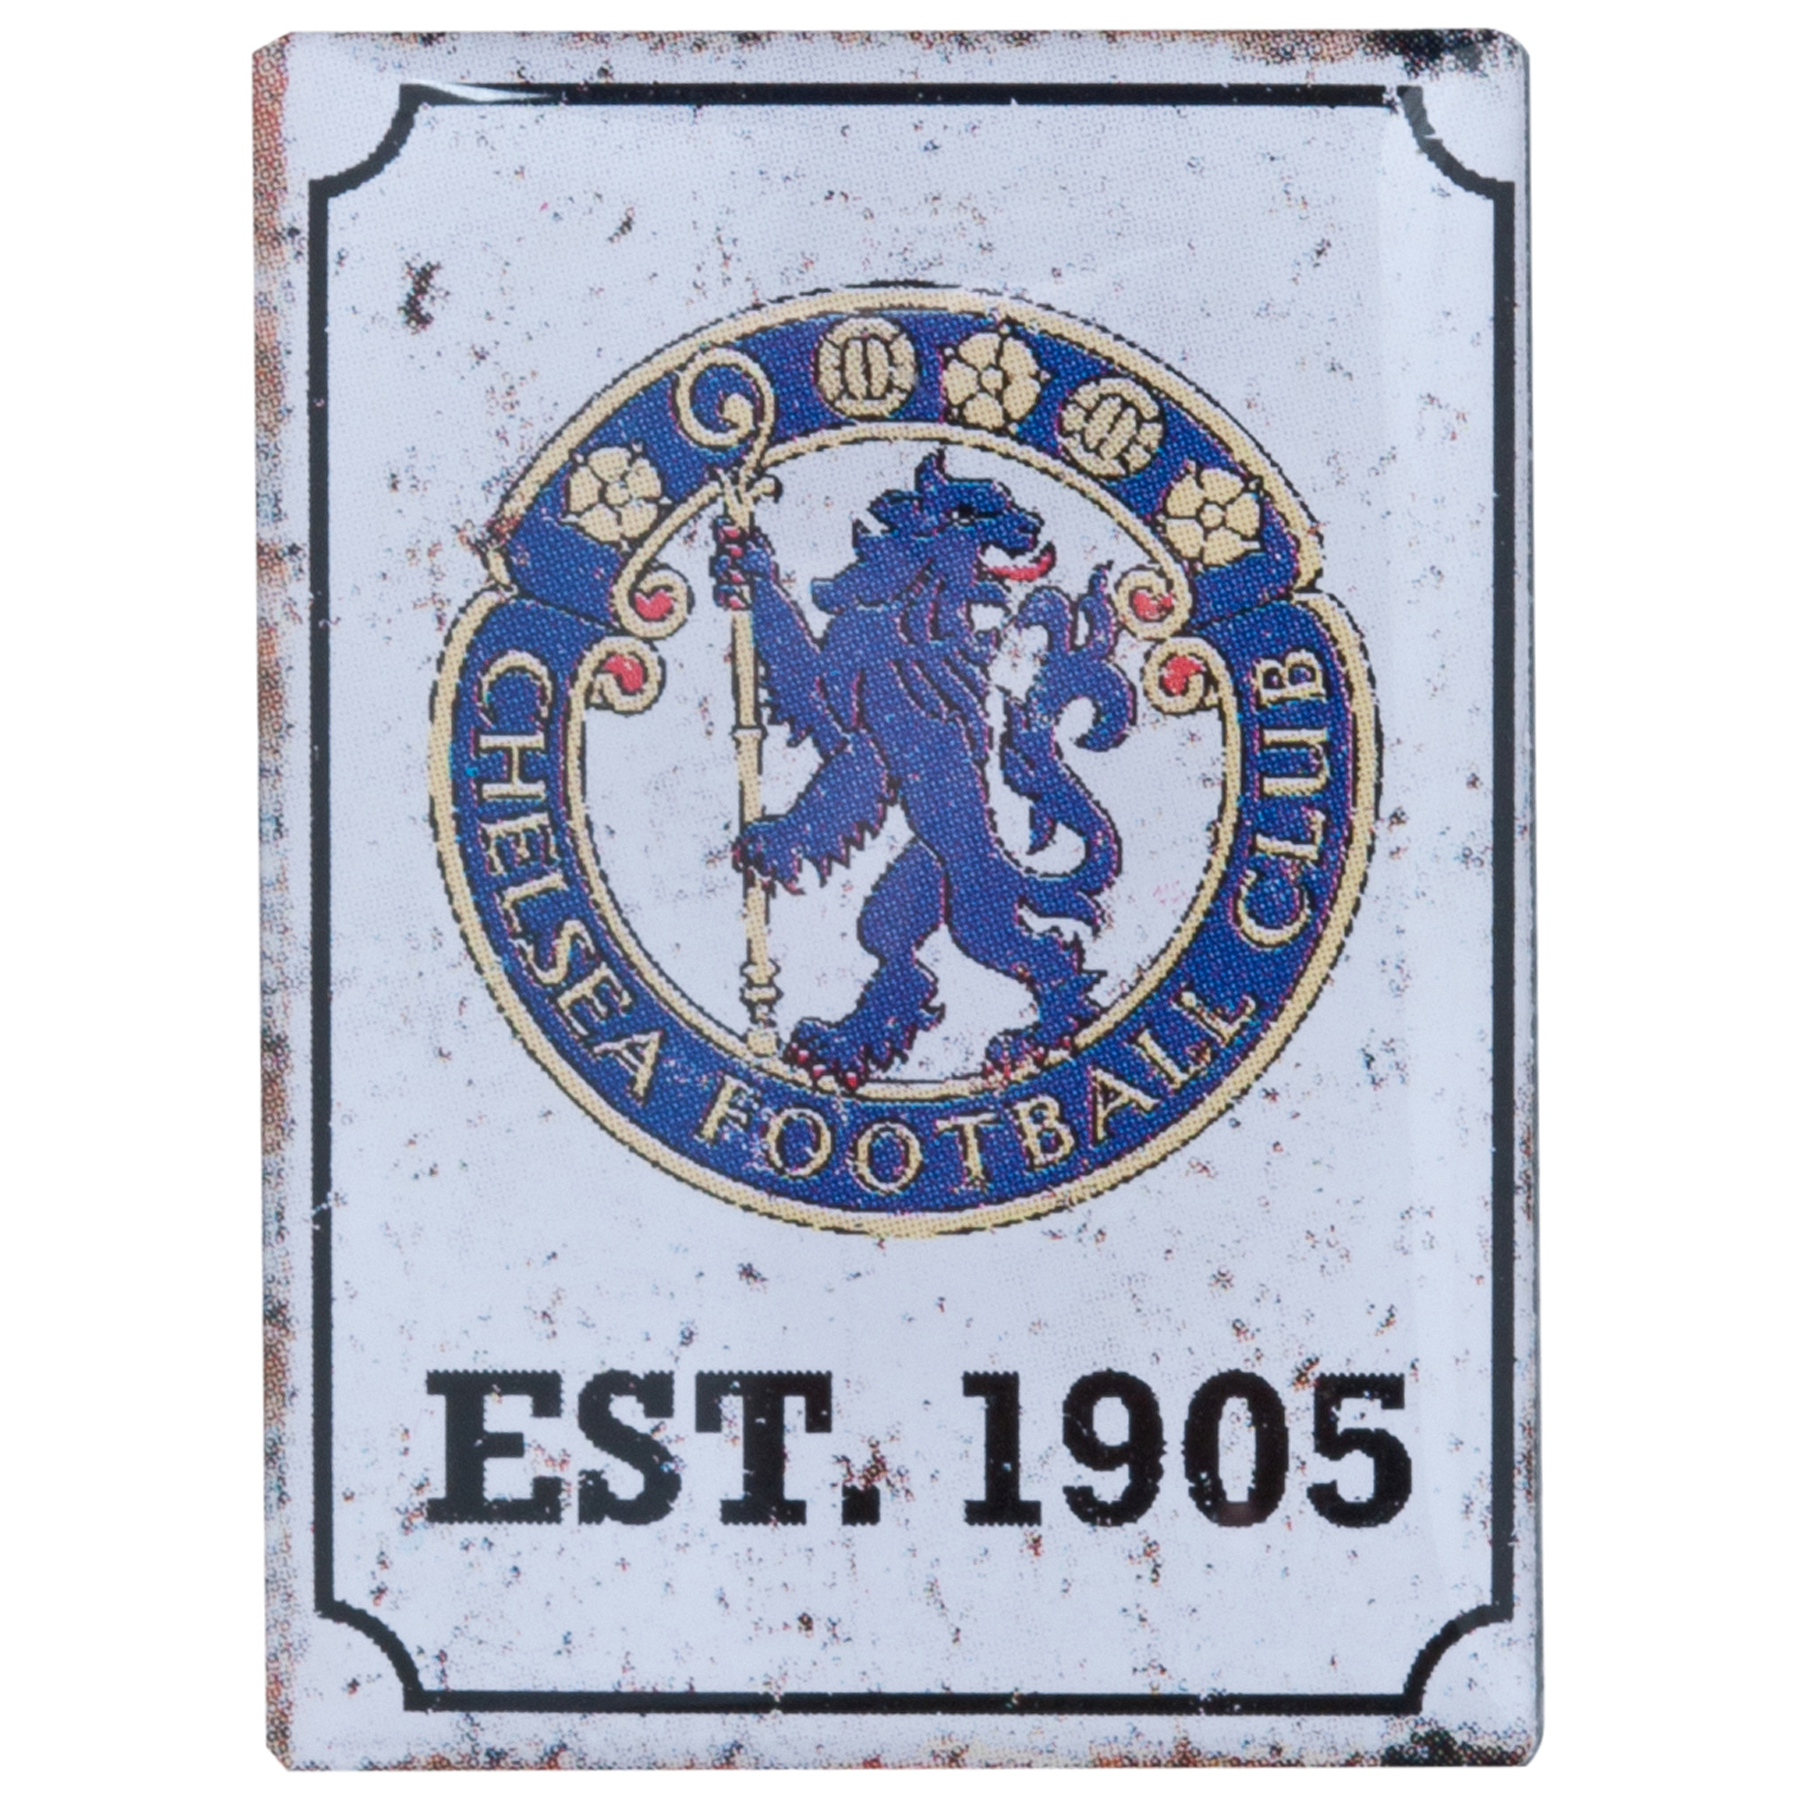 Chelsea Nostaglia Logo Pin Badge